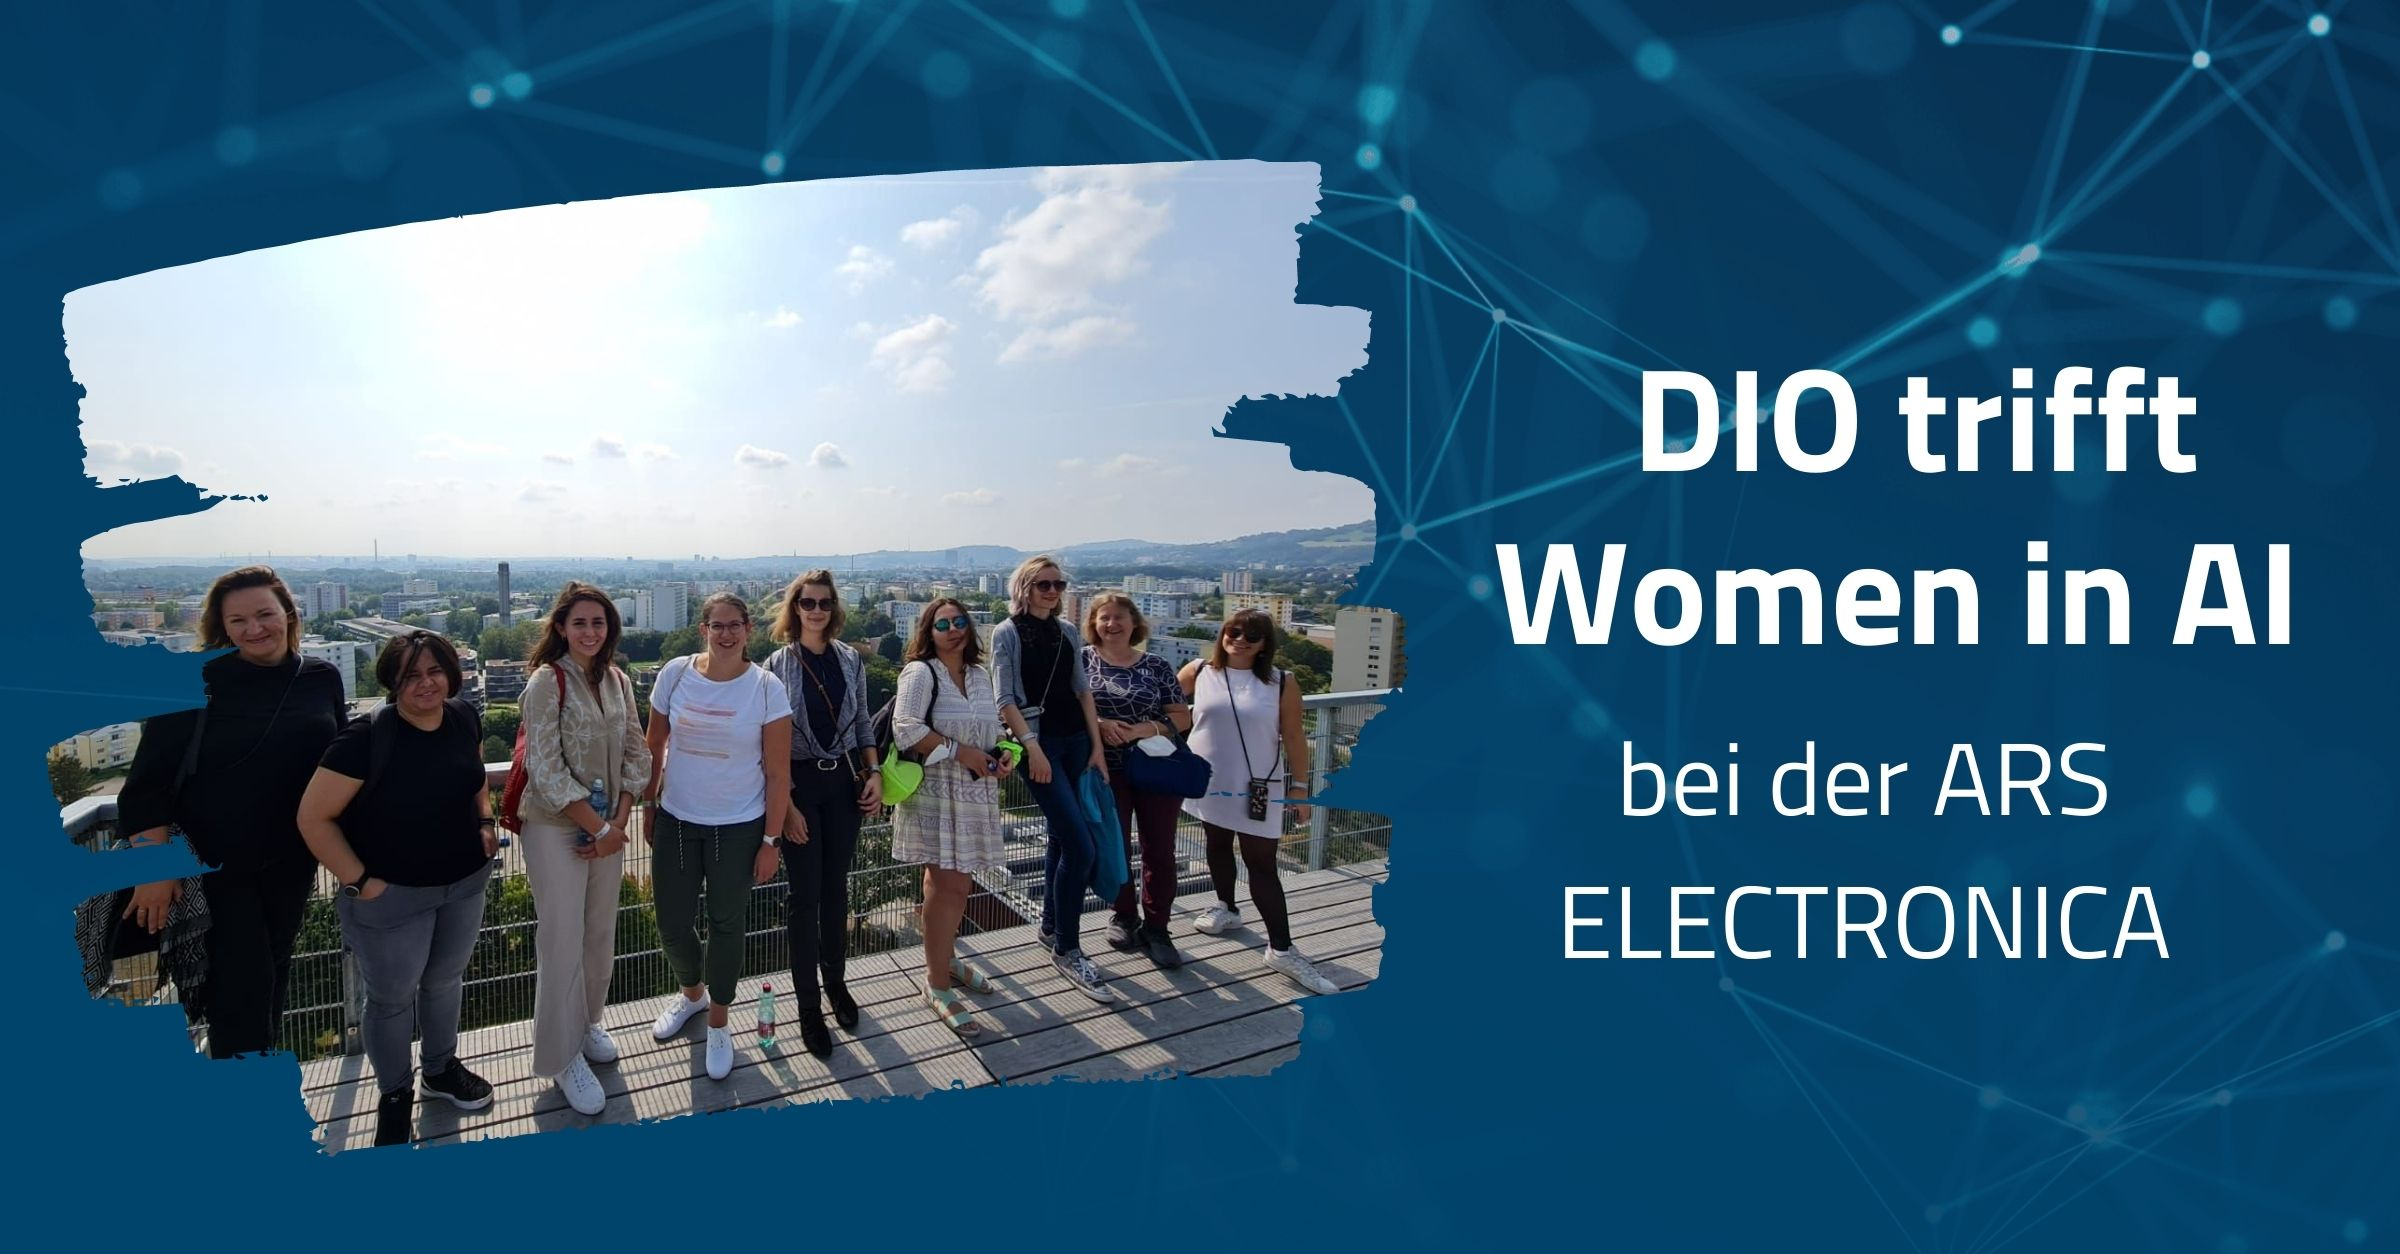 DIO trifft Women in AI bei der Ars Electronica